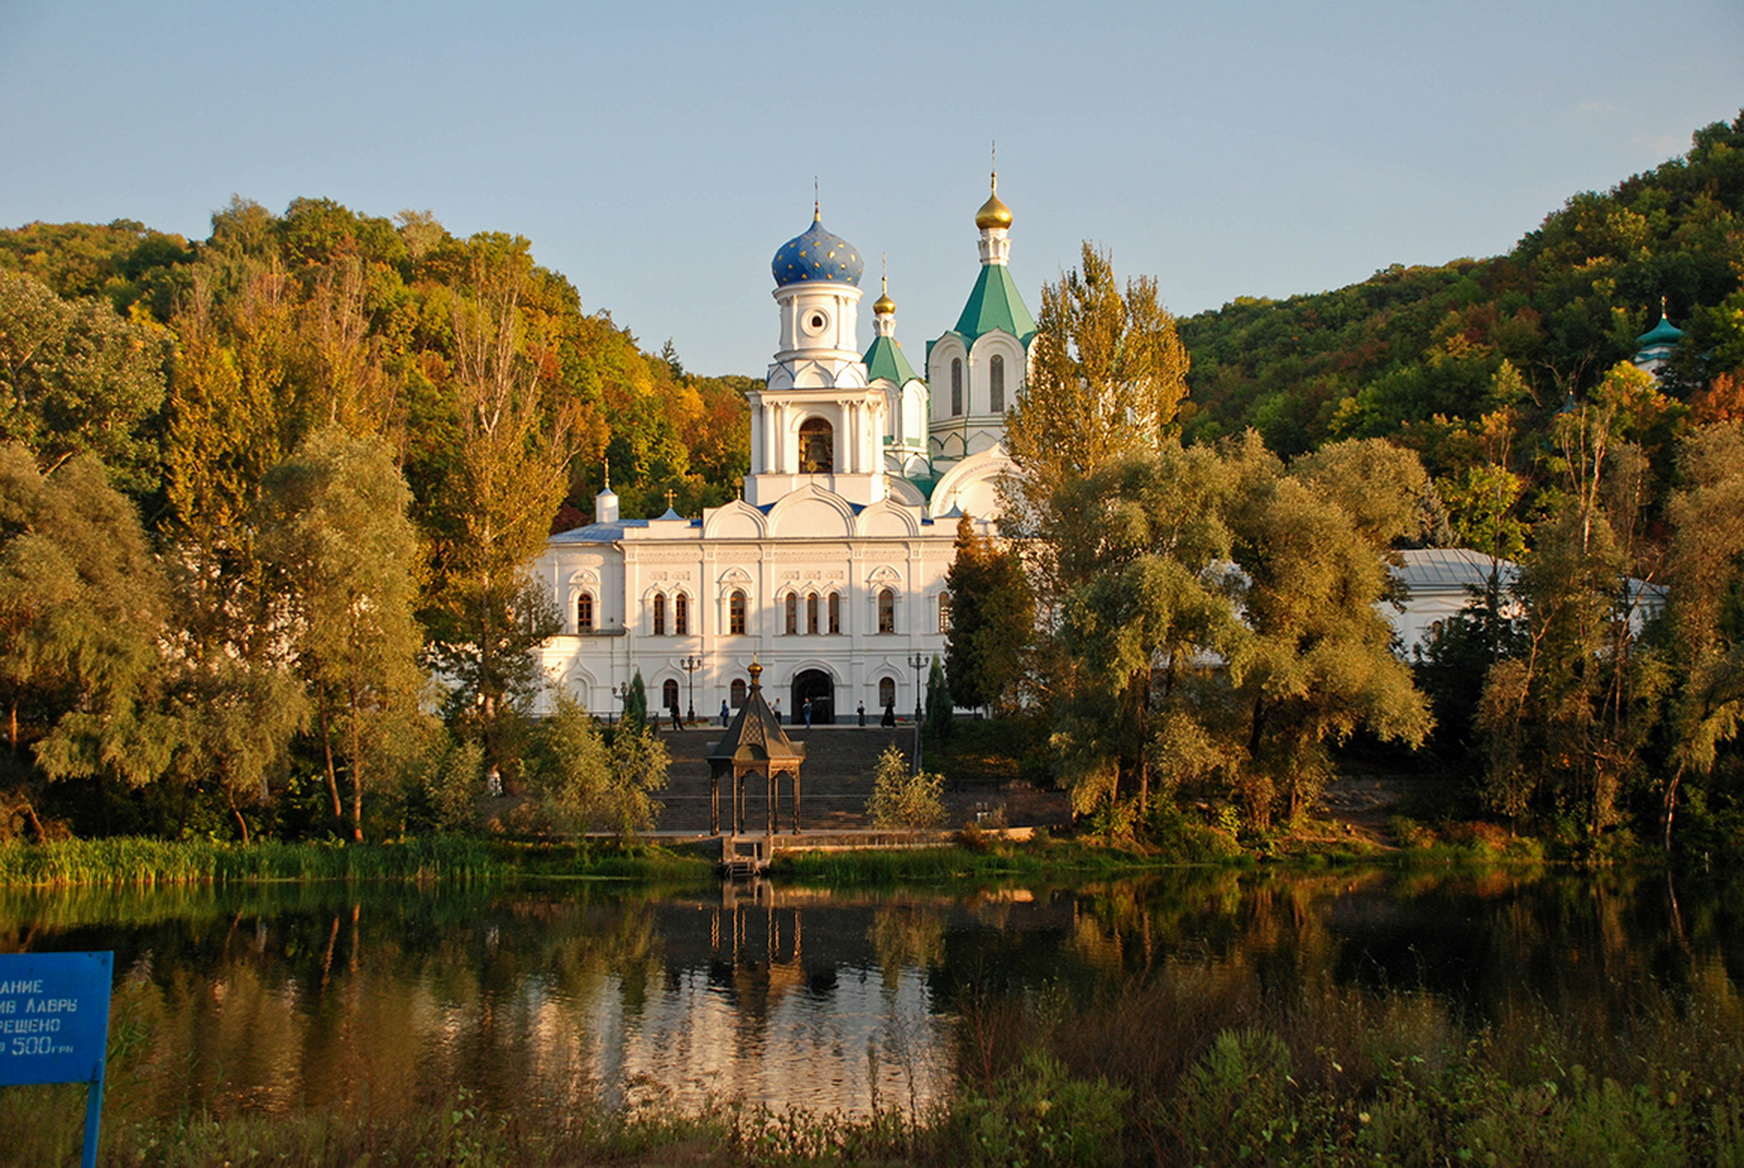 Peaceful sky for peaceful monastery. Razoryonova Tatyana